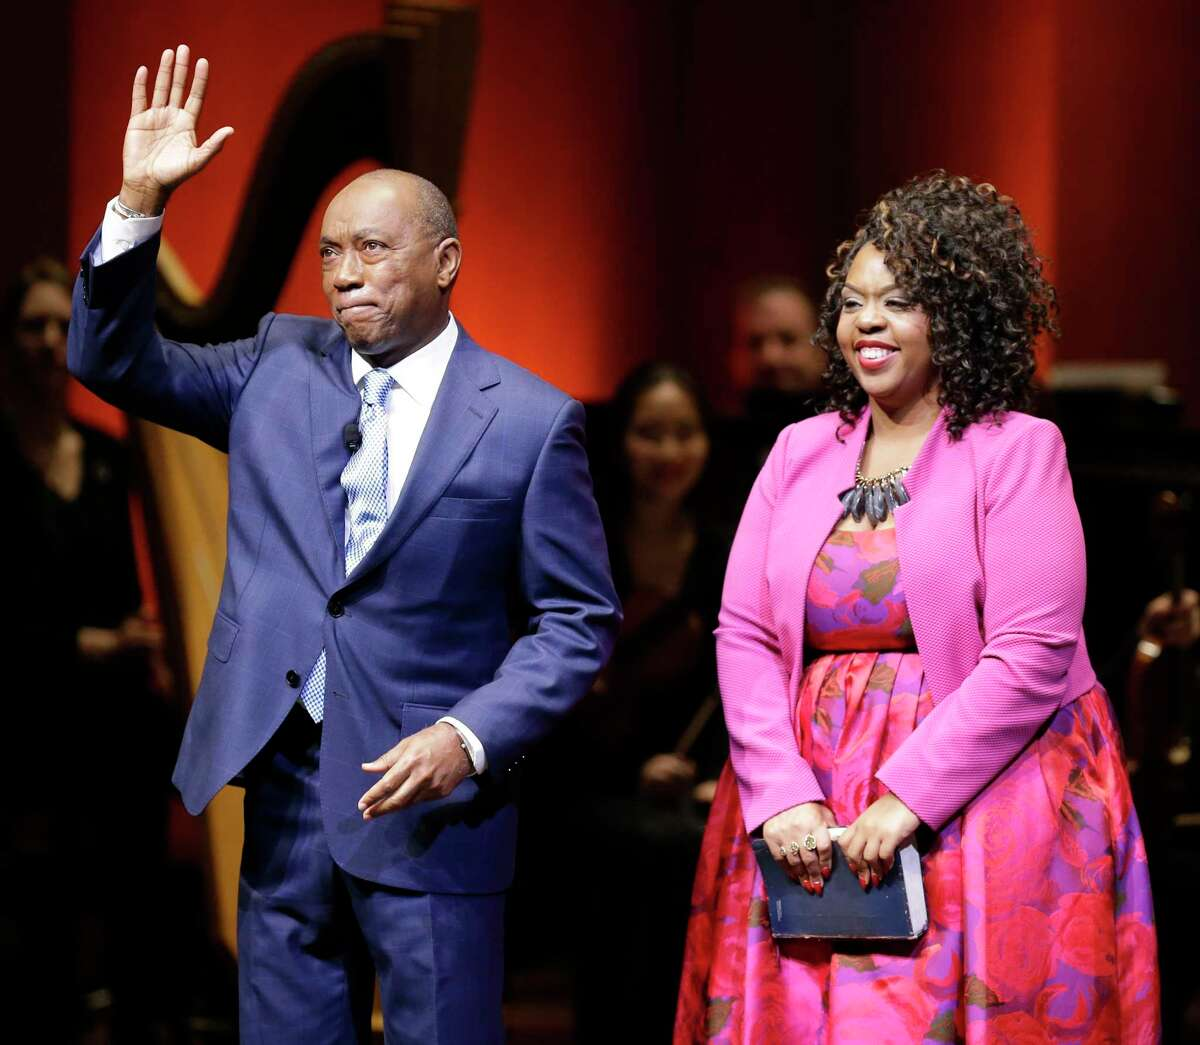 Mayor Sylvester Turner with his daughter Ashley Turner waves after being sworn in by Judge Vanese Gilmore during the 2016 Elected Officials Inauguration Ceremony at the Jesse H. Jones Hall for the Performing Arts, Monday, Jan. 4, 2016, in Houston.